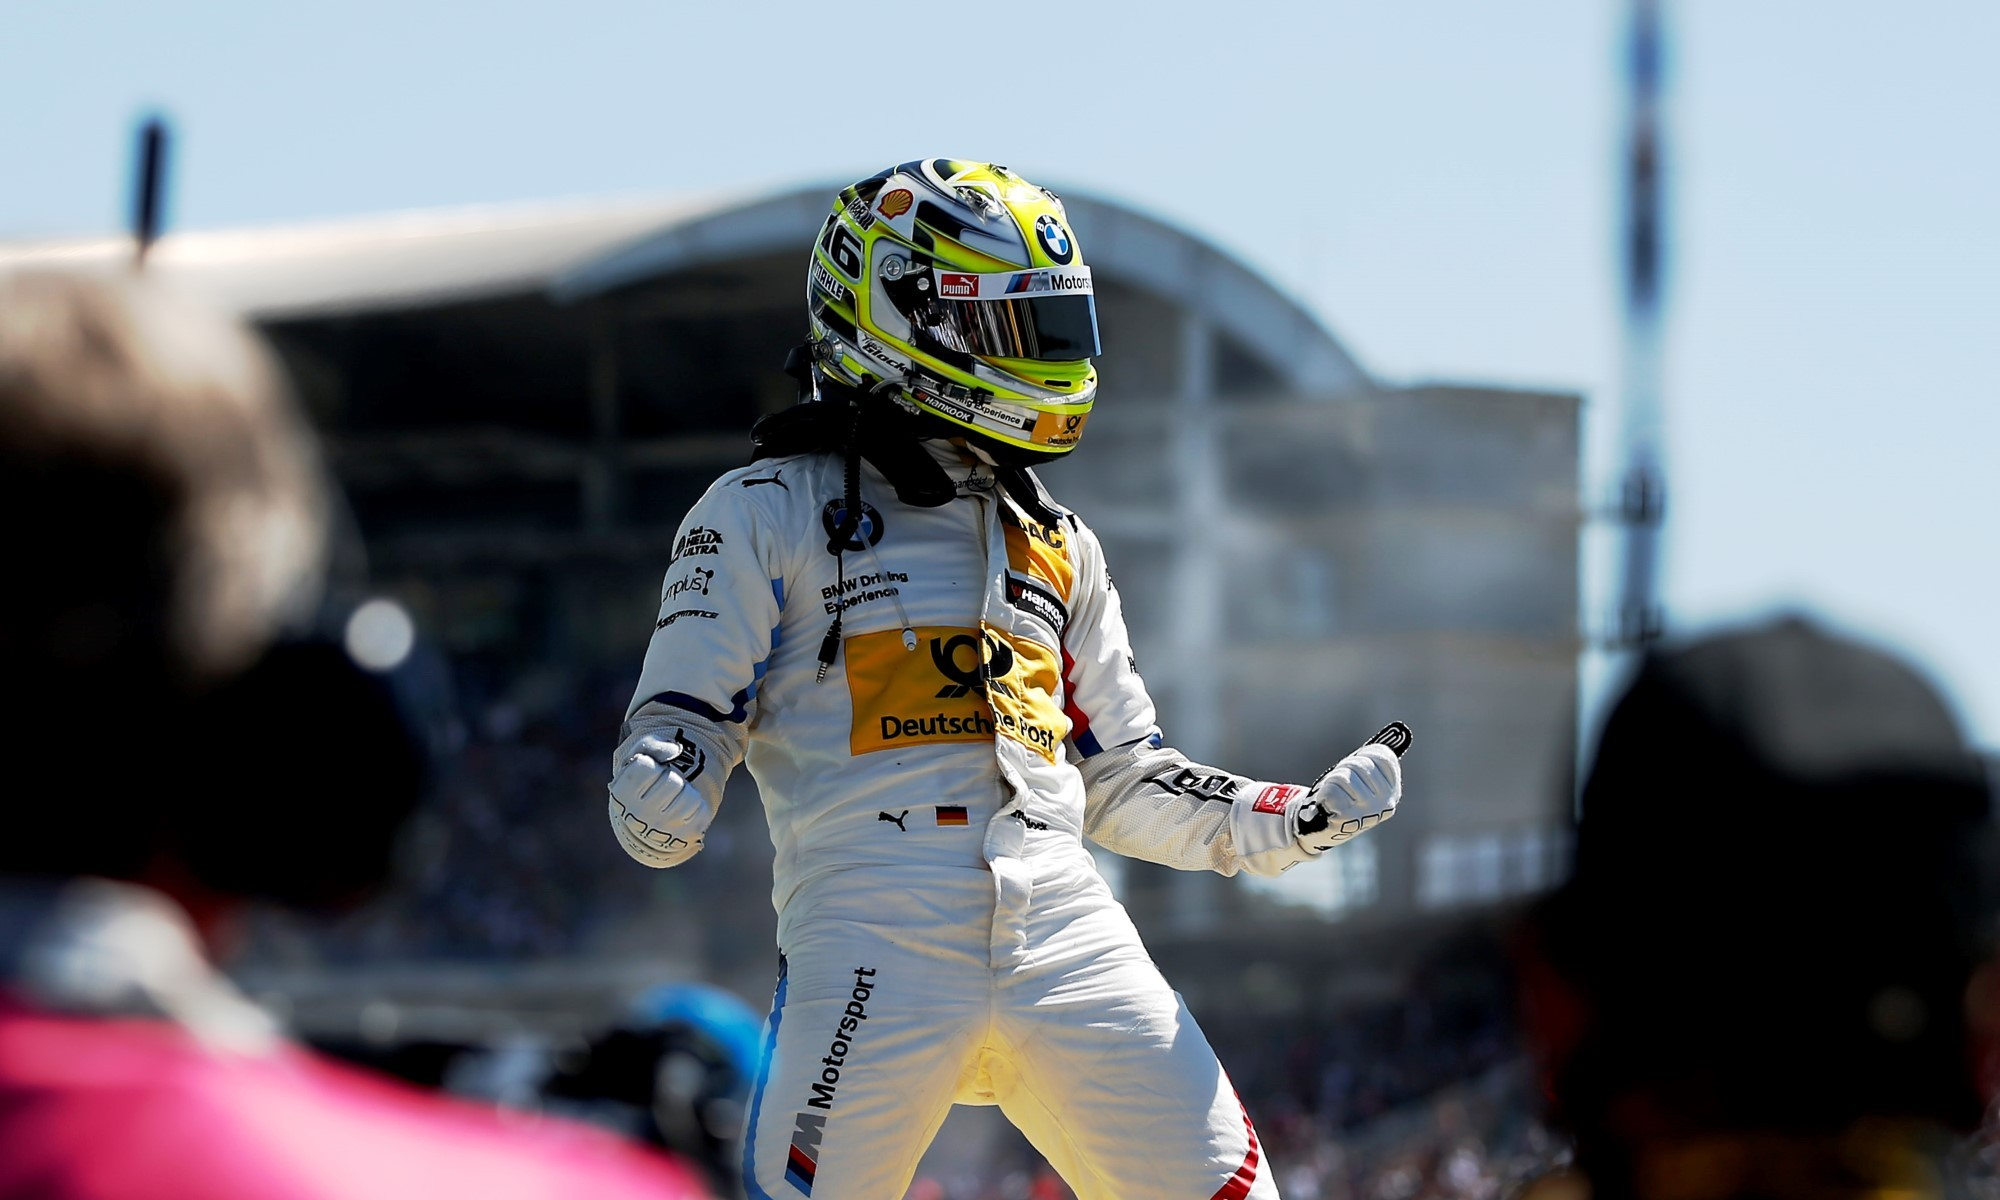 Timo Glock celebrates after his win